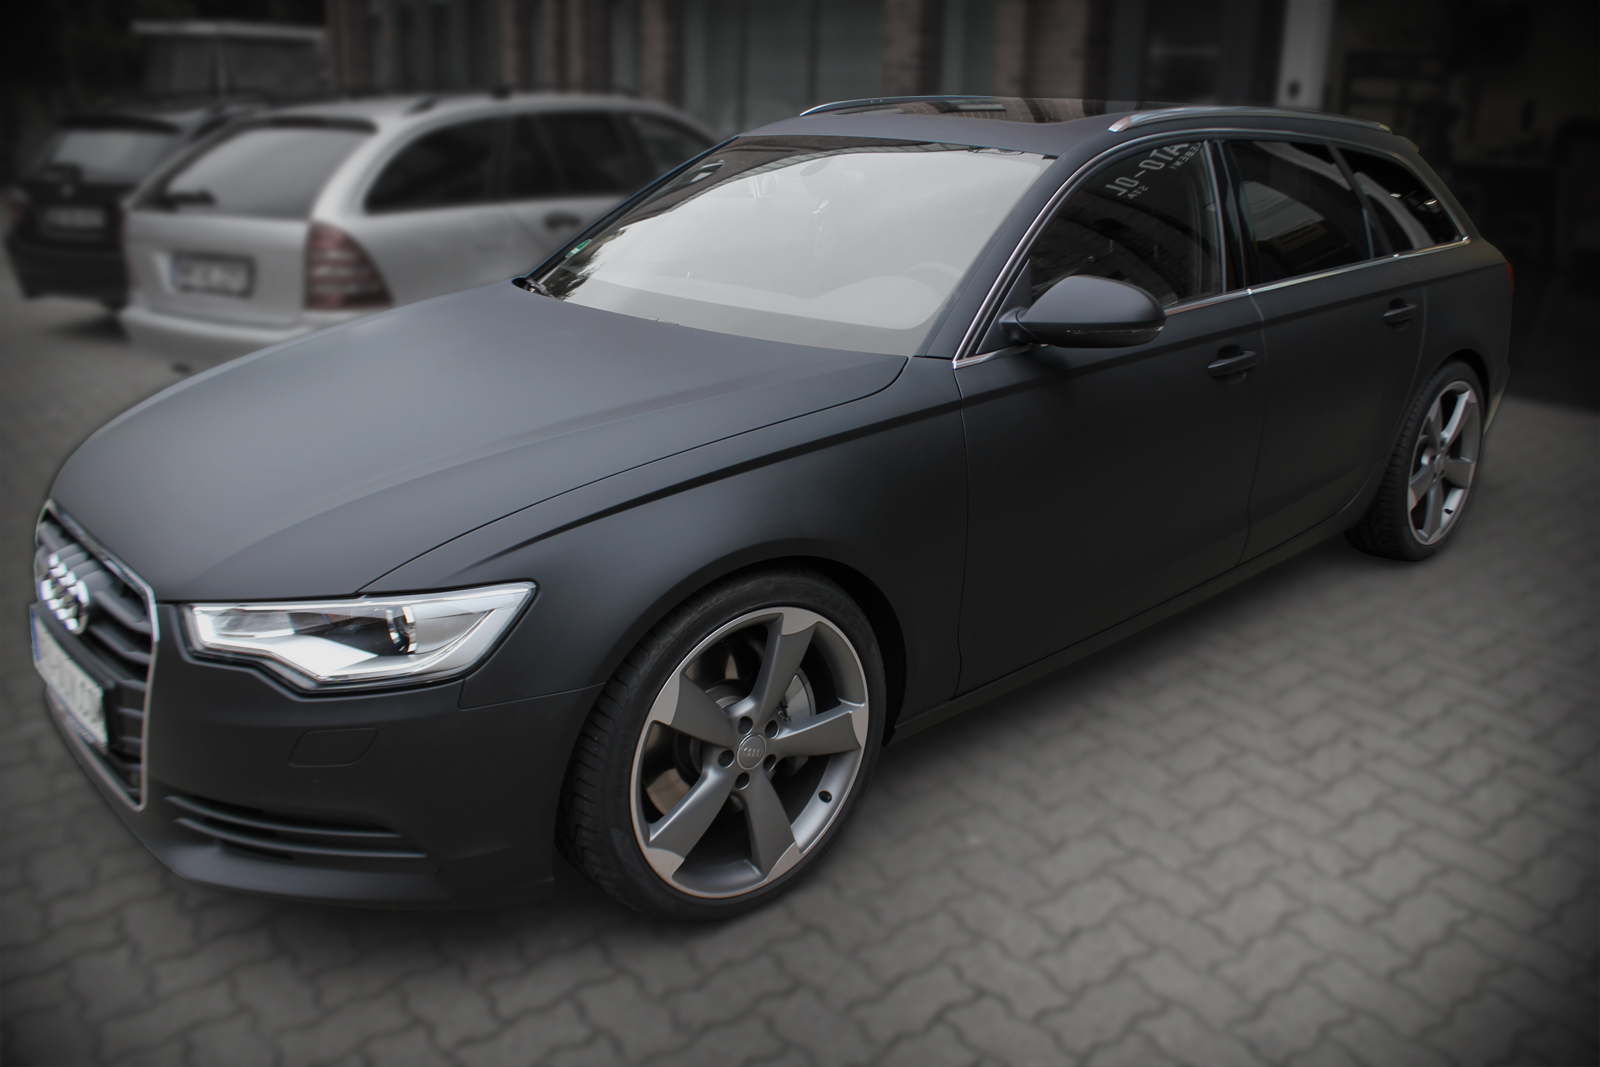 audi a6 avant in schwarz matt nato. Black Bedroom Furniture Sets. Home Design Ideas